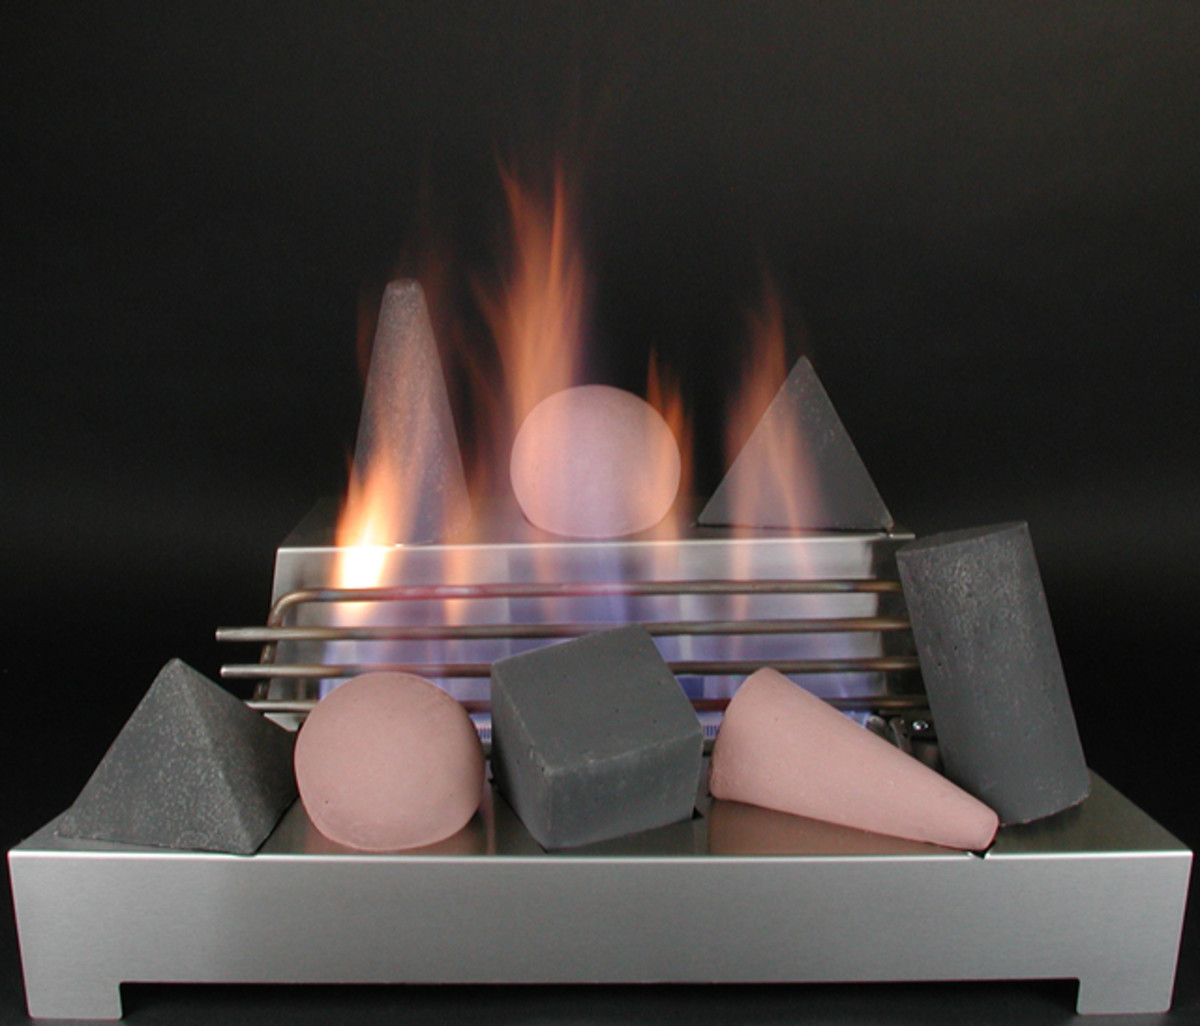 stainless steel ventless gas fireplace burner with fire shapes burning.